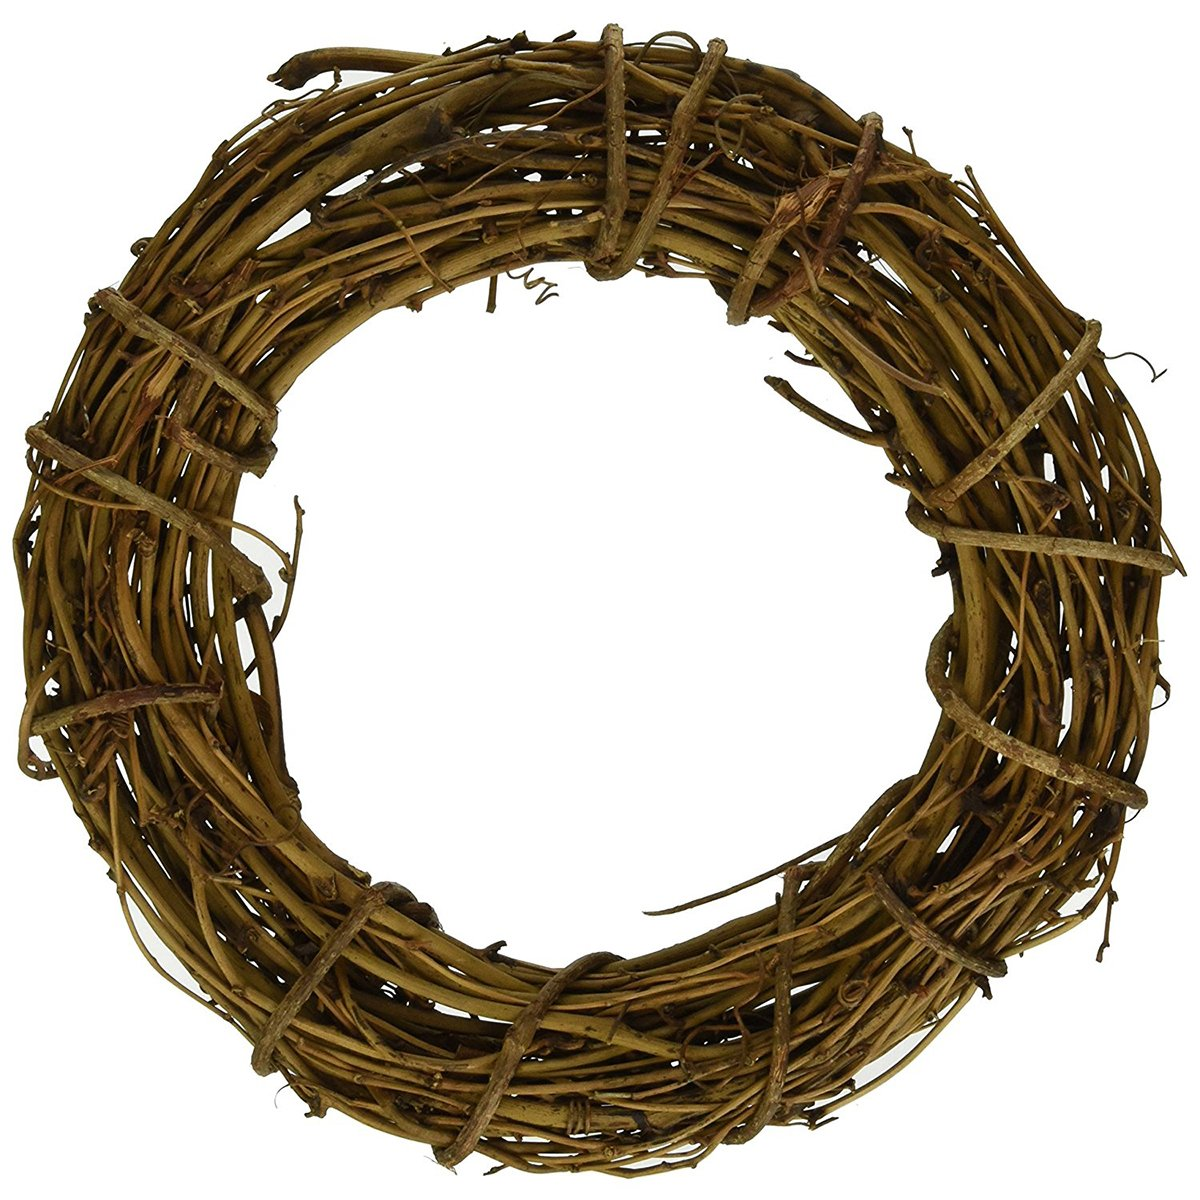 queenland Natural Grapevine Wreath Rustic Ring Wreath DIY Crafts Base for Christmas Wreath Door Garland Home Decoration Gift Hanging Decor 4 inches,Pack of 1